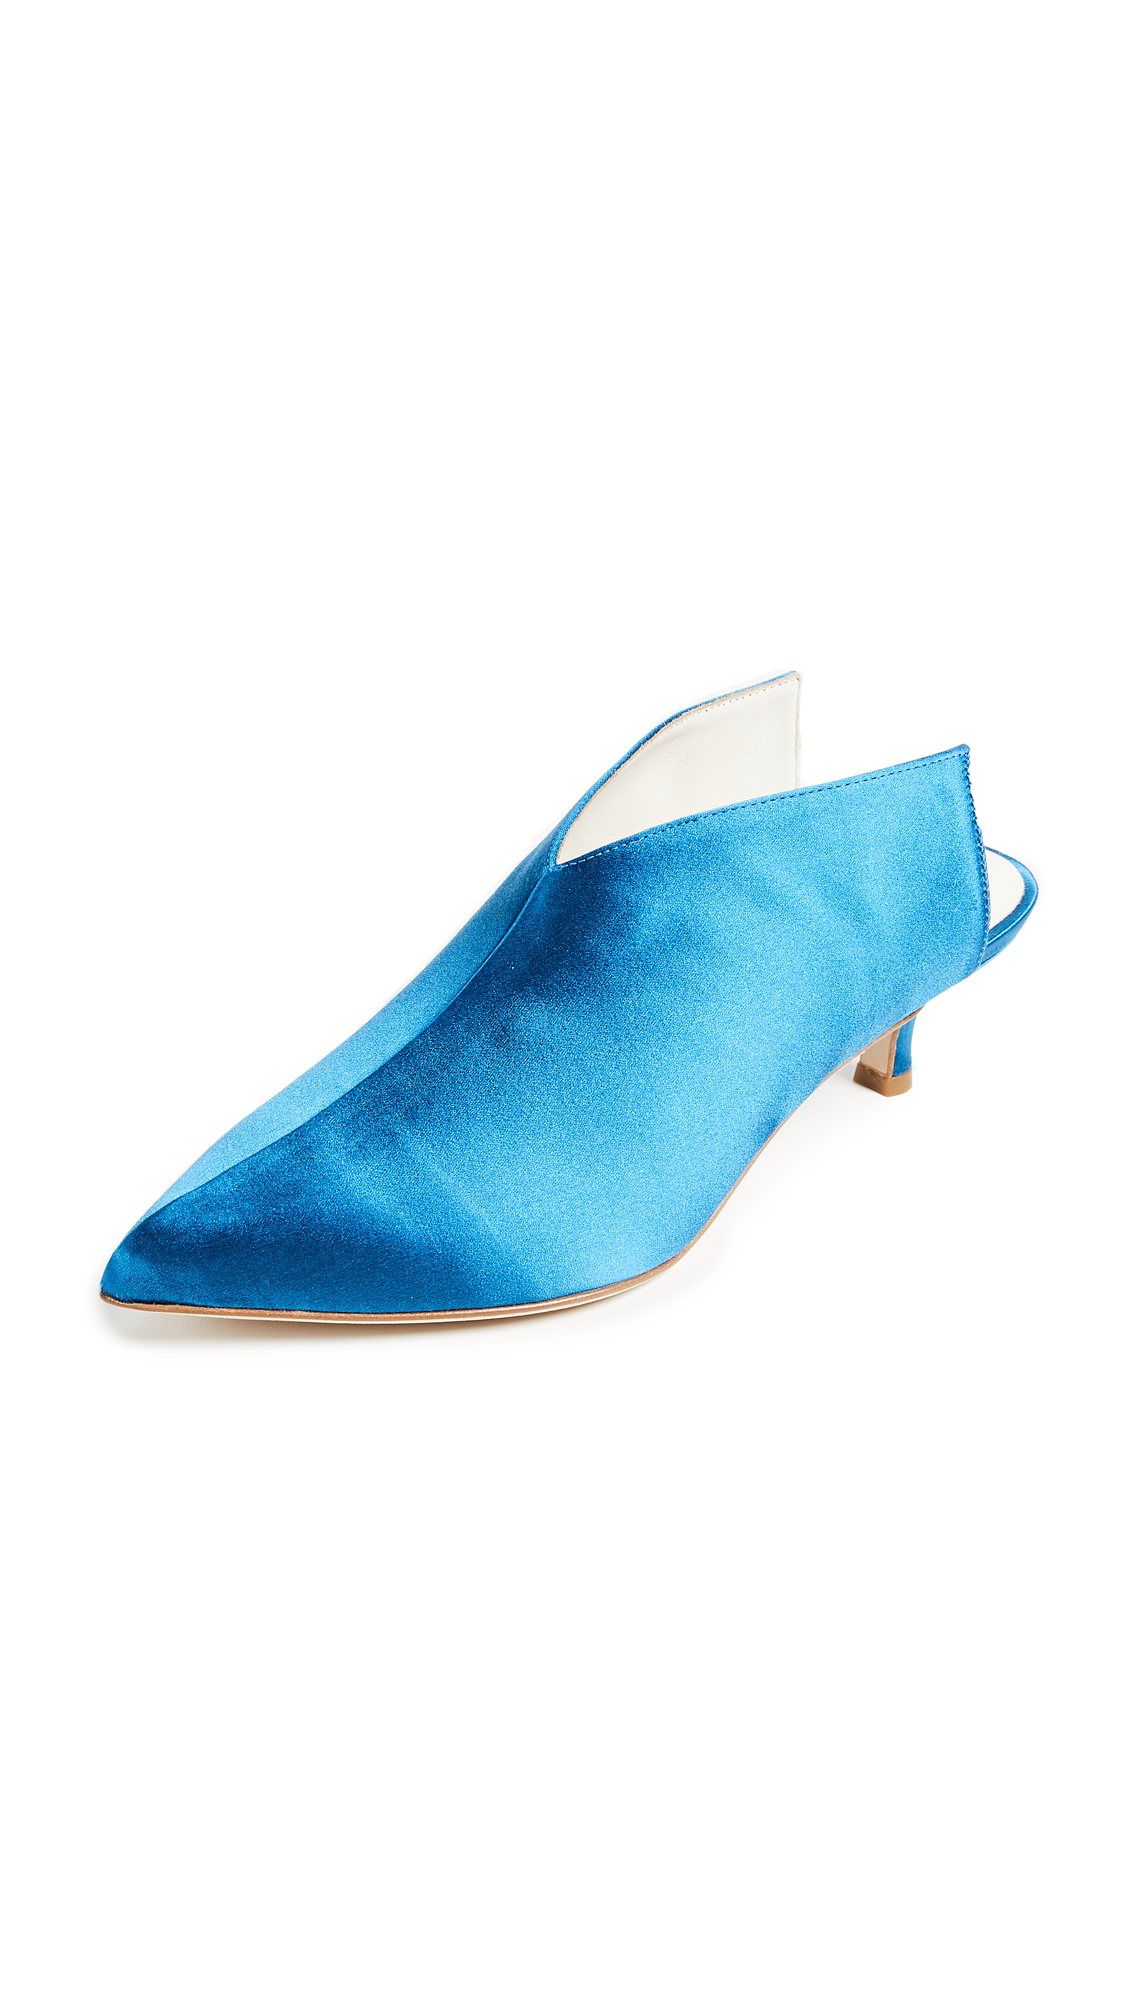 Tibi Jase Mules - Oxford Blue